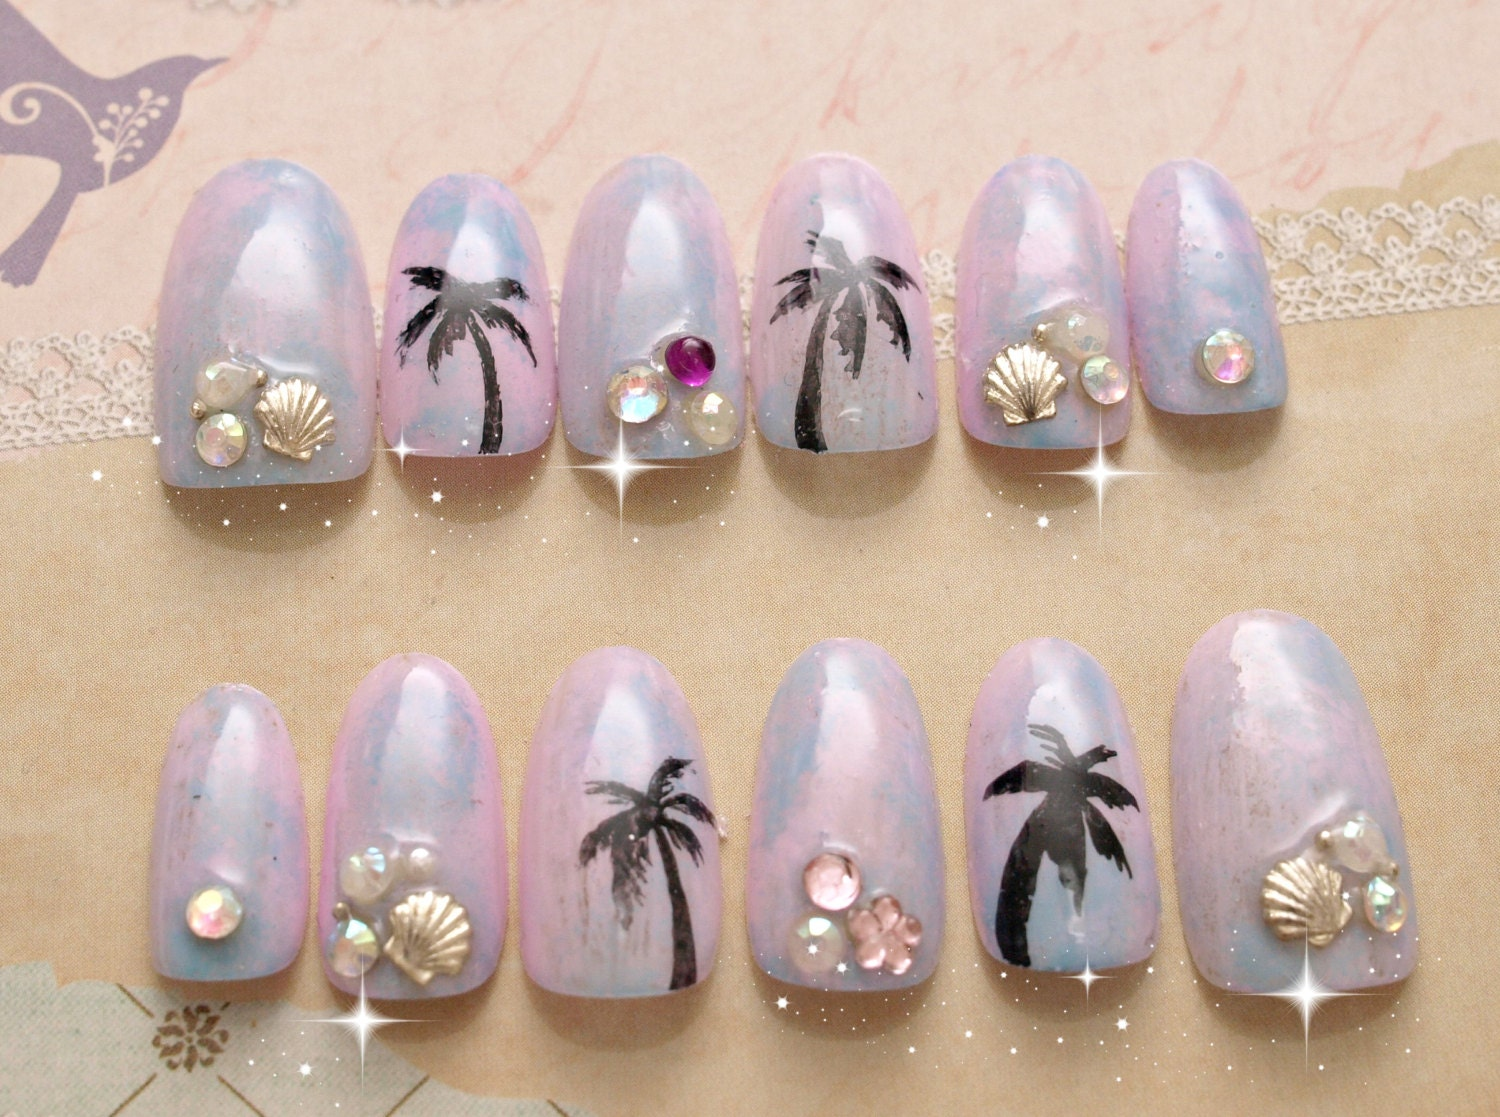 3d Nail Art » Japanese 3d Nail Art - Pictures of Nail Art Design Ideas